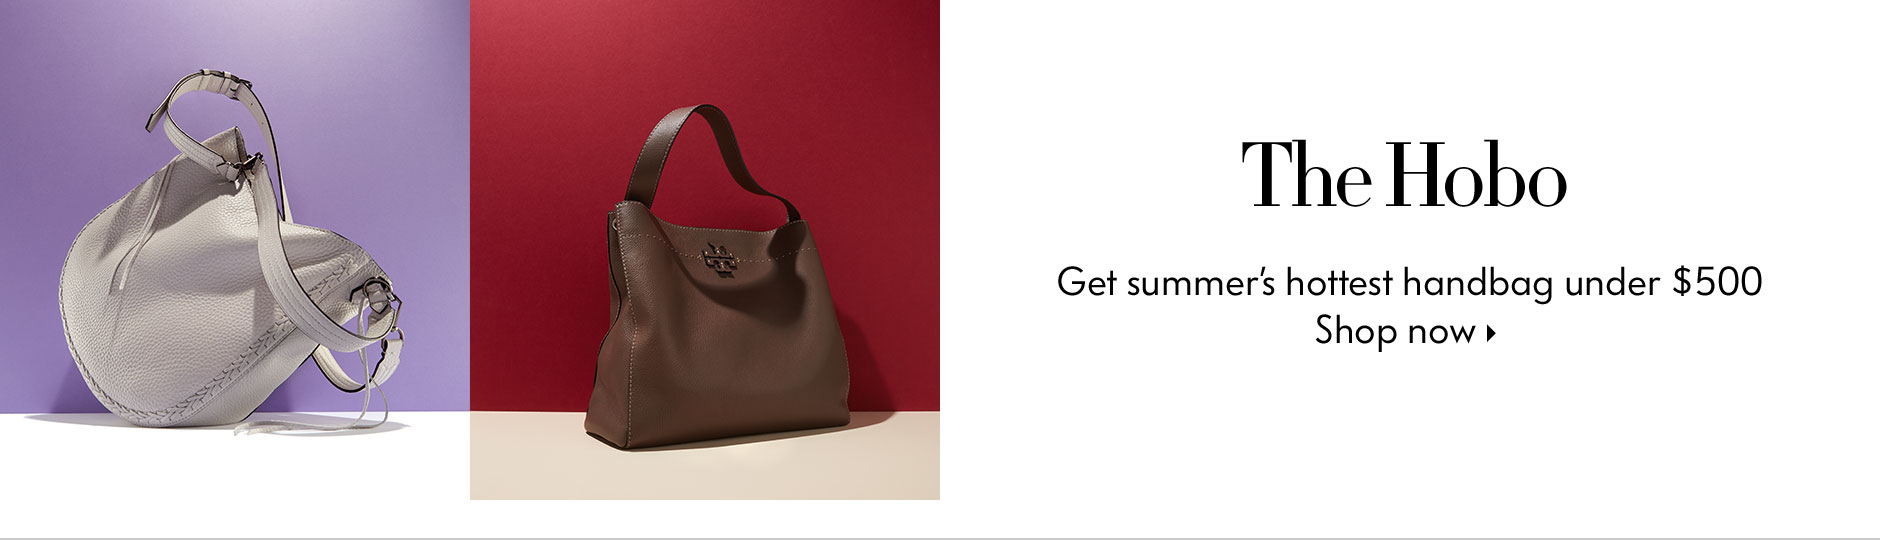 The Hobo - Get summer's hottest handbag under $500